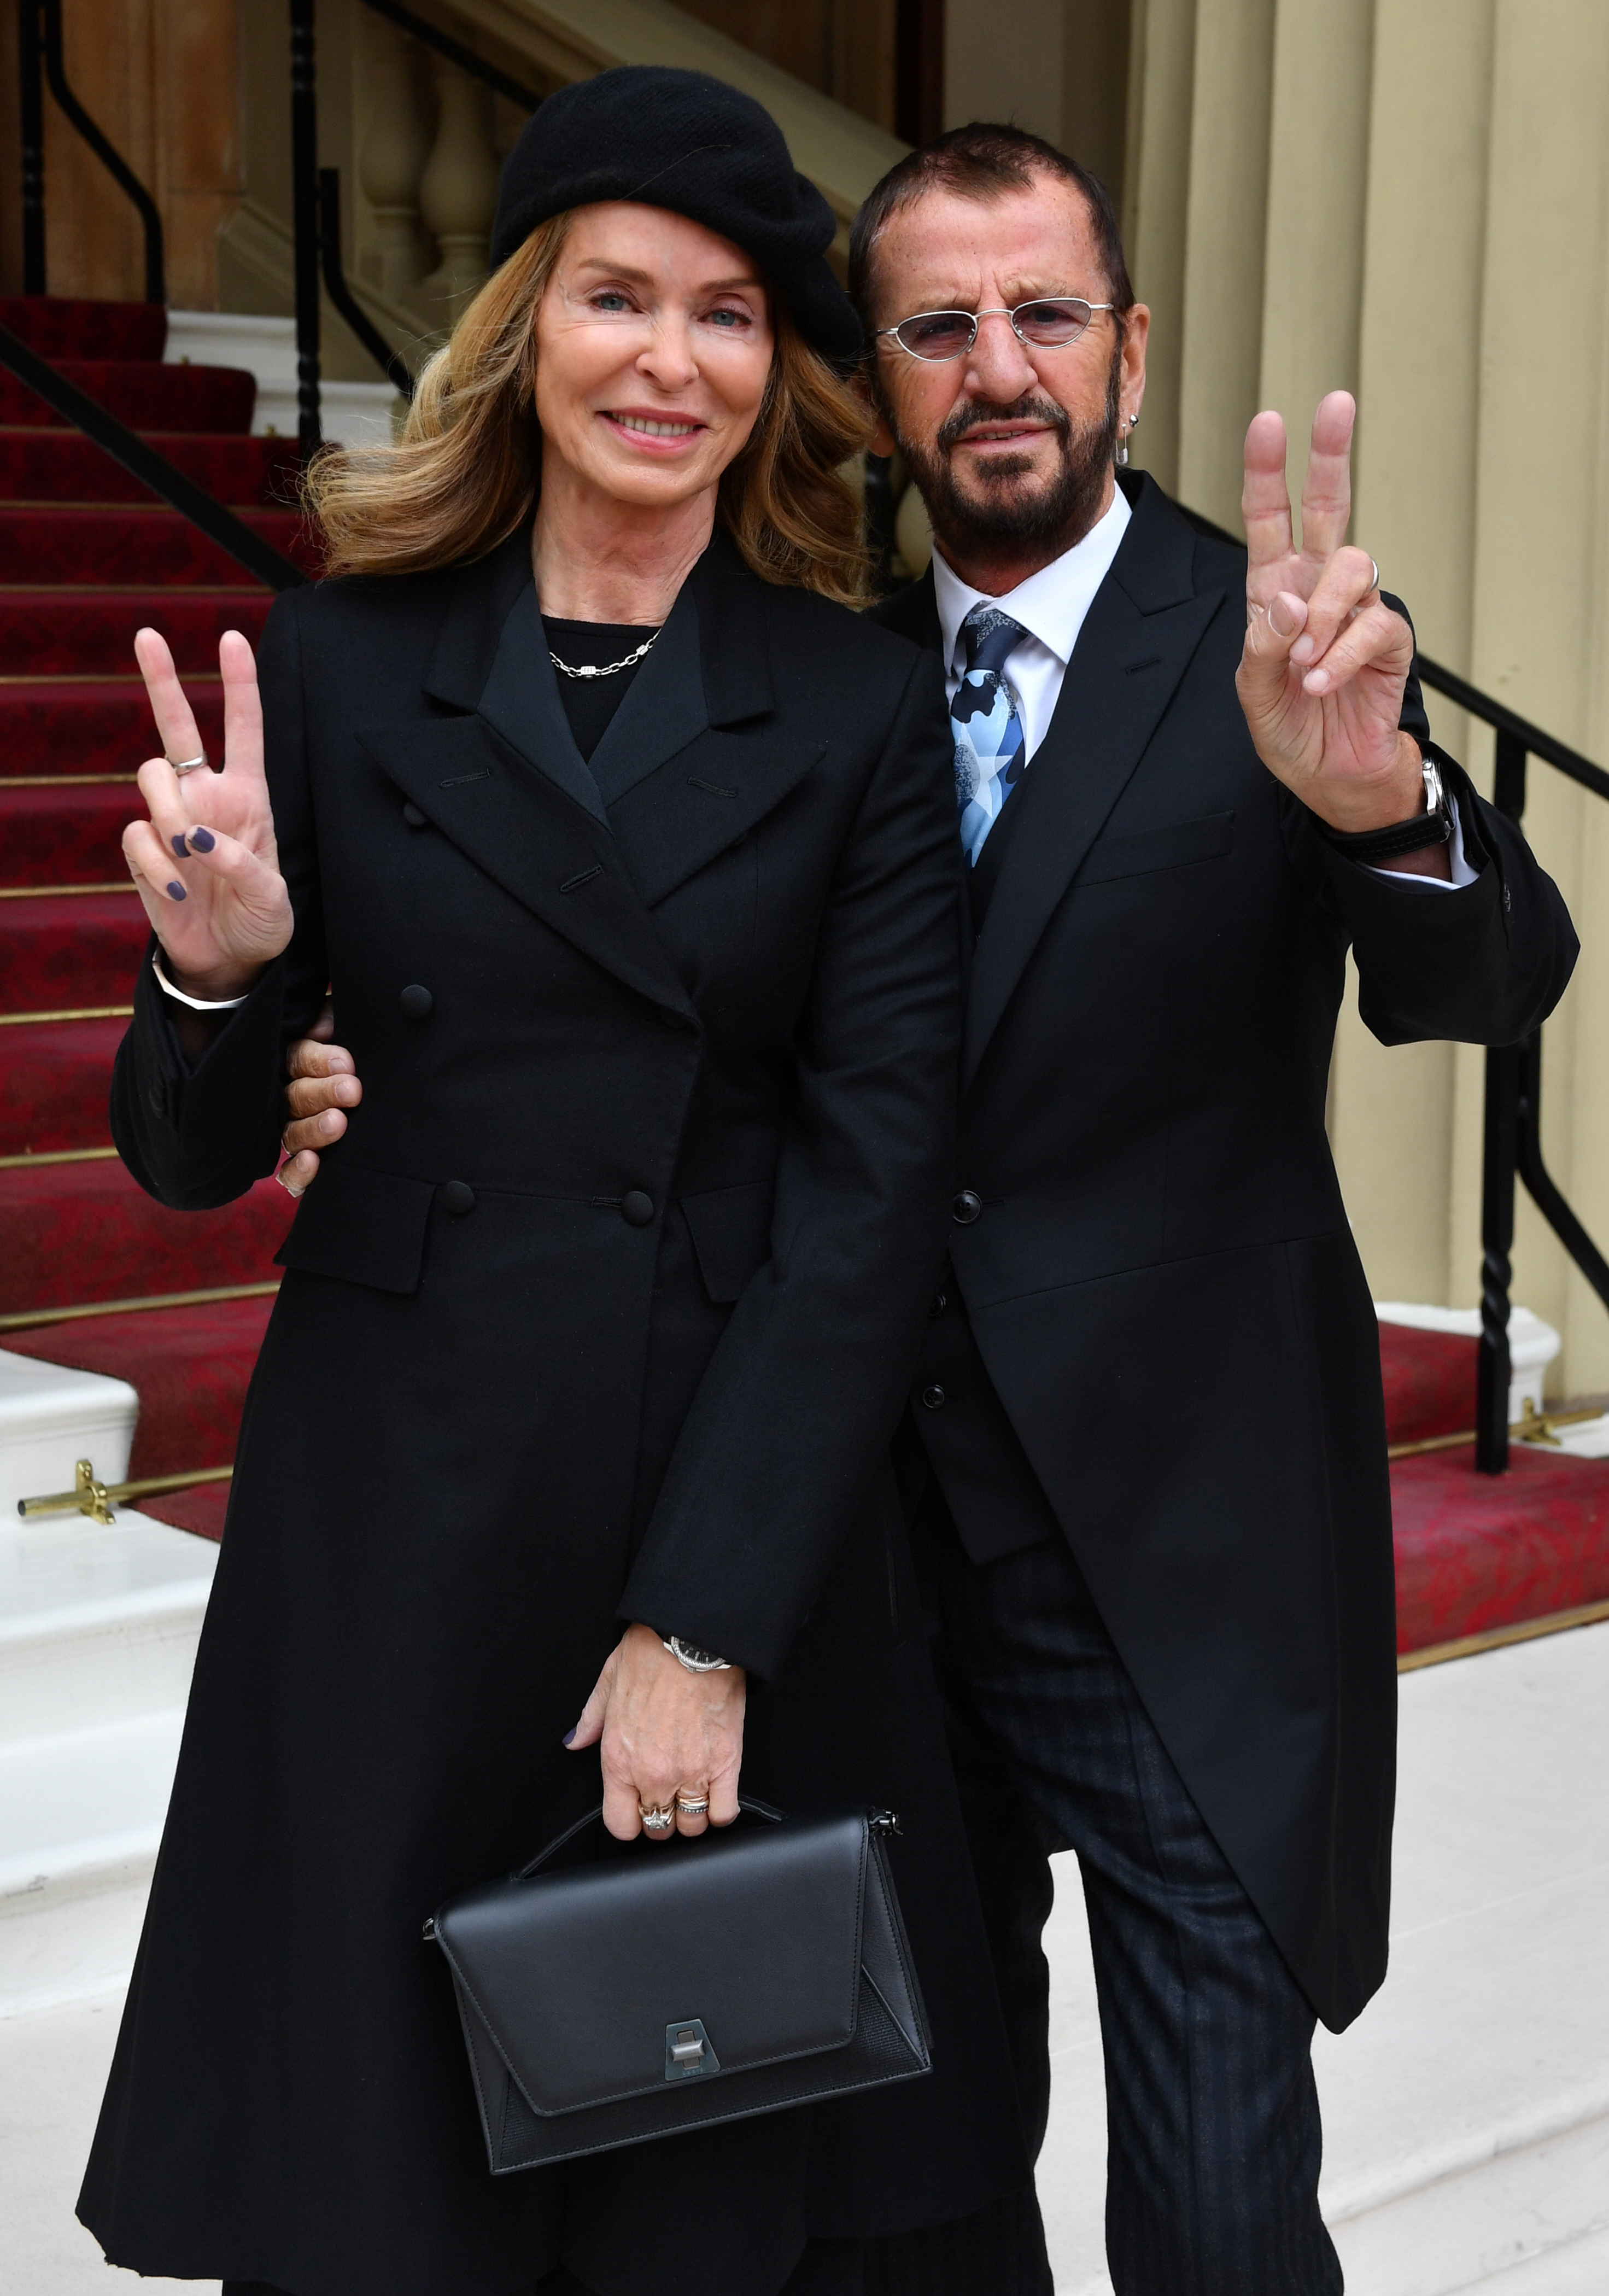 Ringo Starr, who's real name is Richard Starkey, arrives with his wife Barbara Bach to receive his Knighthood at an Investiture ceremony at Buckingham palace in London, Britain, March 20, 2018.  John Stillwell/Pool via Reuters - RC1D386D4110